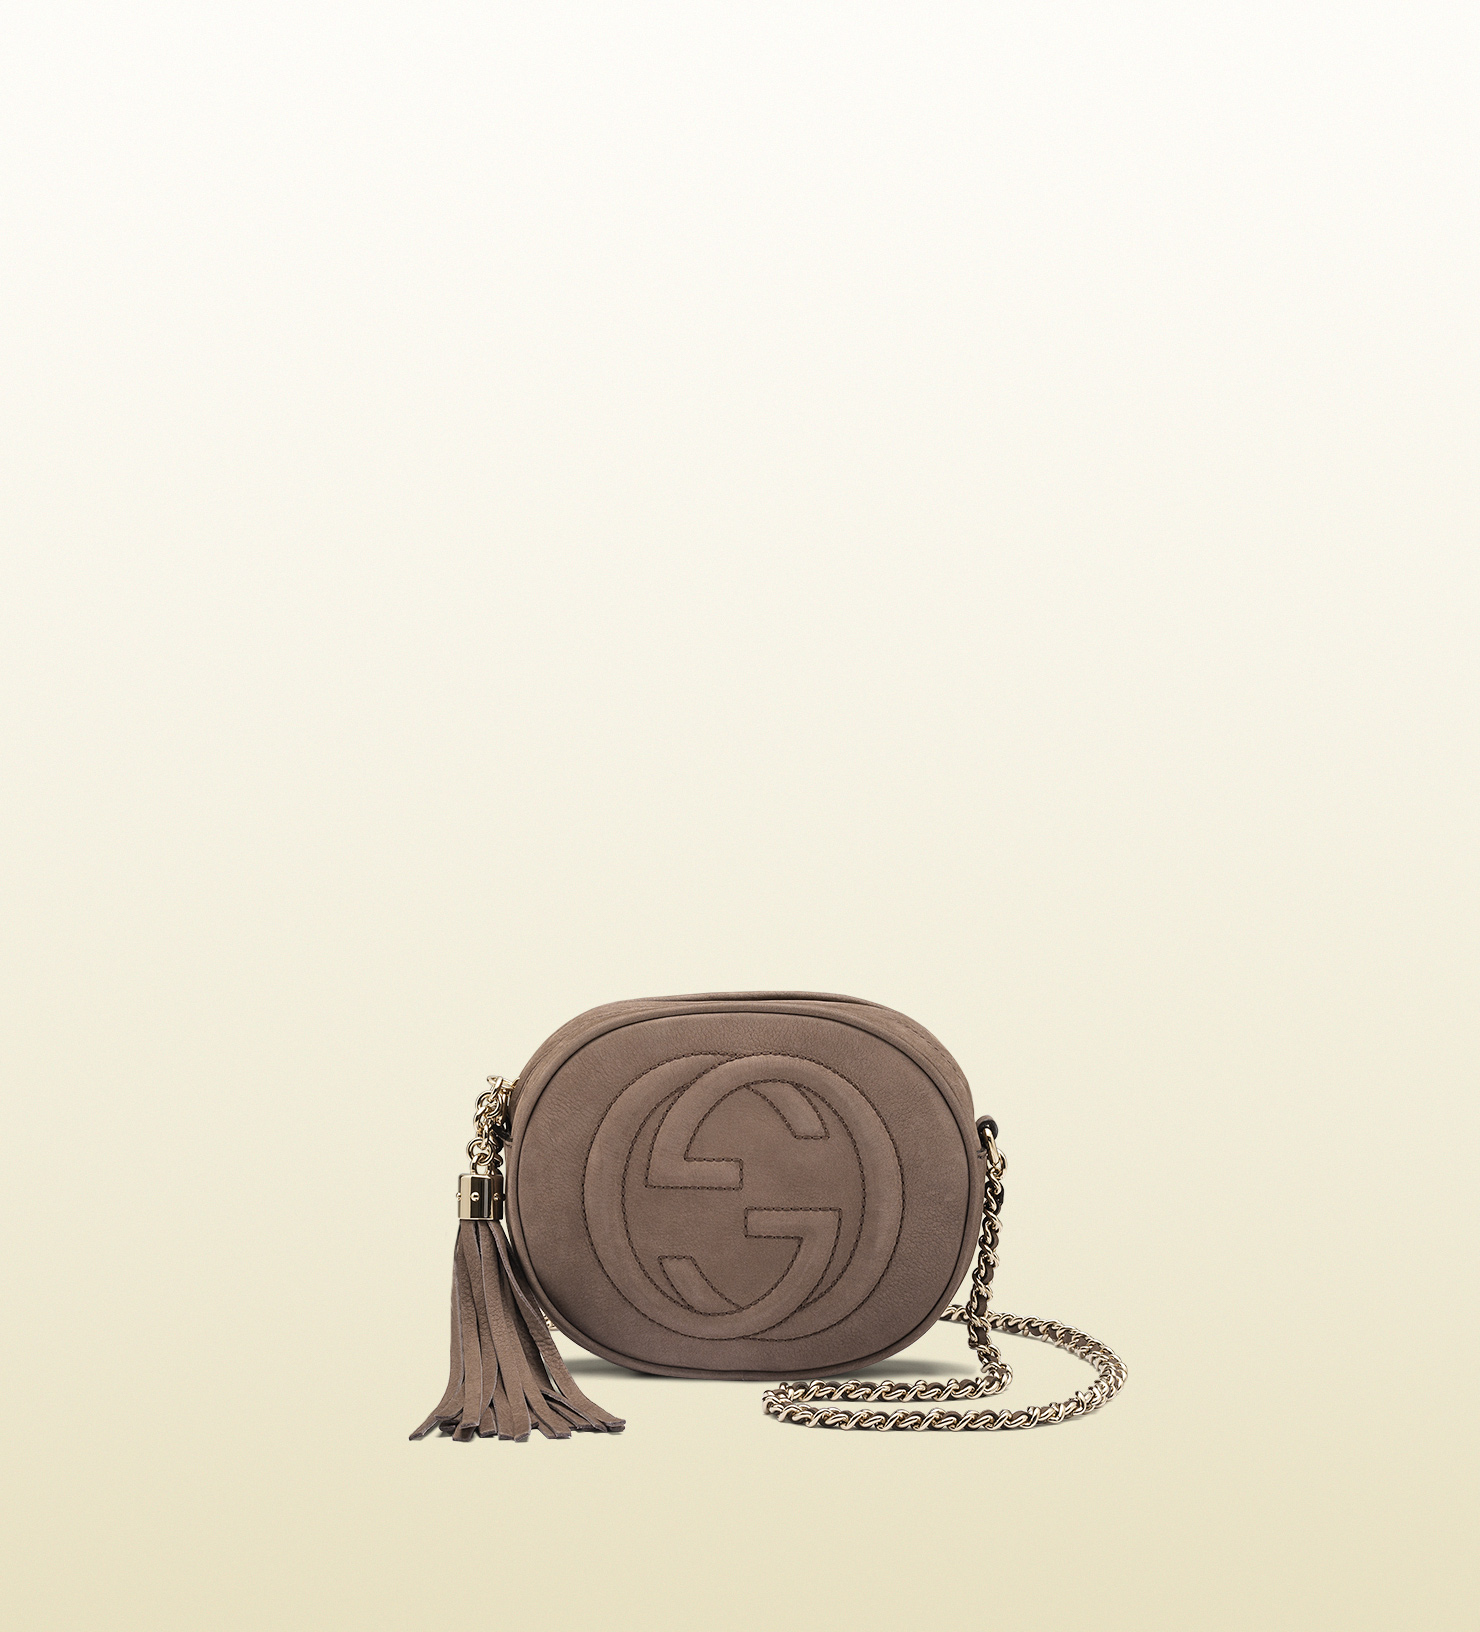 f6d8277aa6b Gucci - soho nubuck leather mini chain bag 353965AHHHG2137